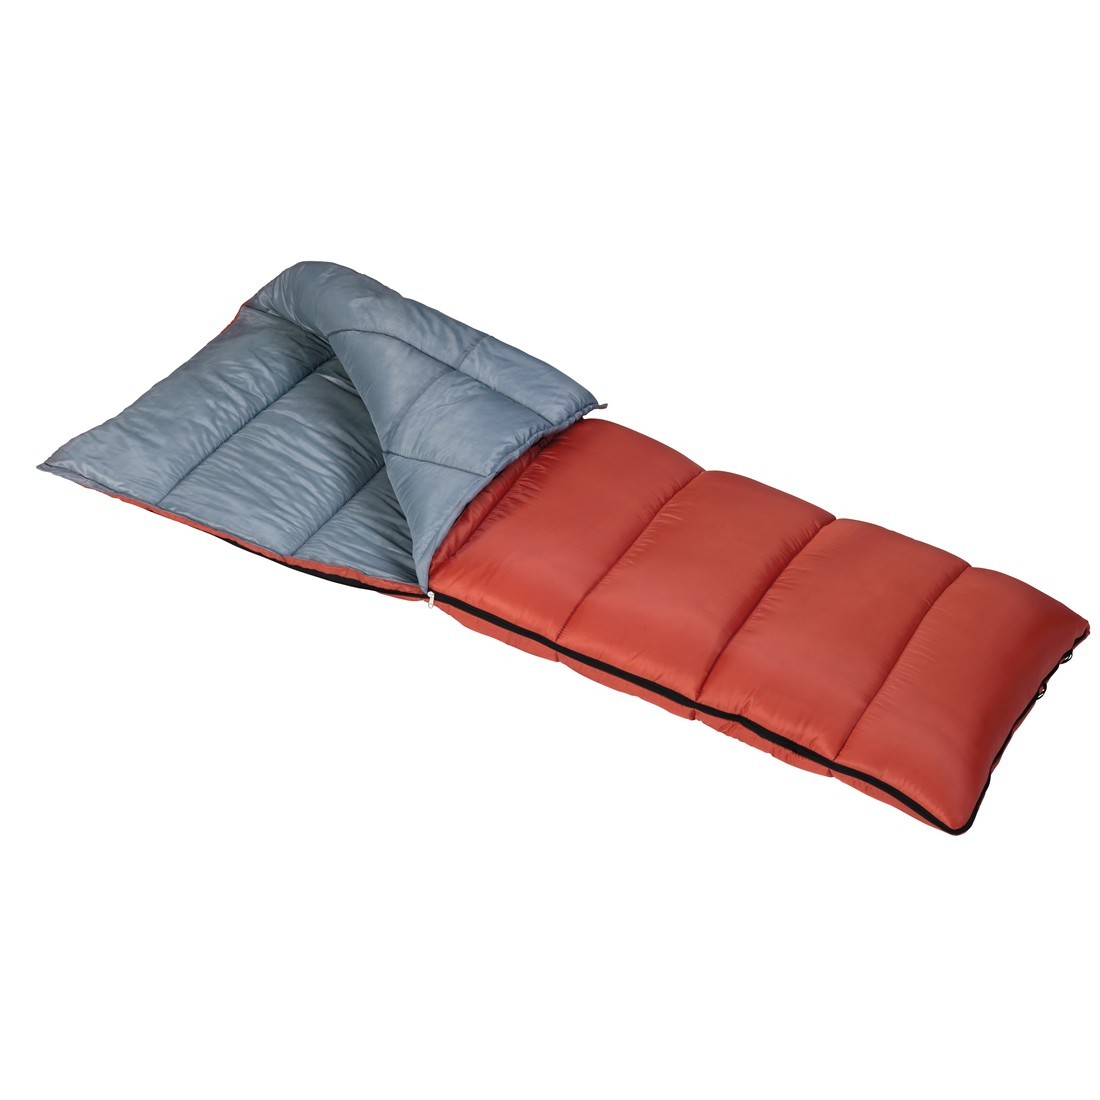 Sycamore Extra Long Sleeping Bag